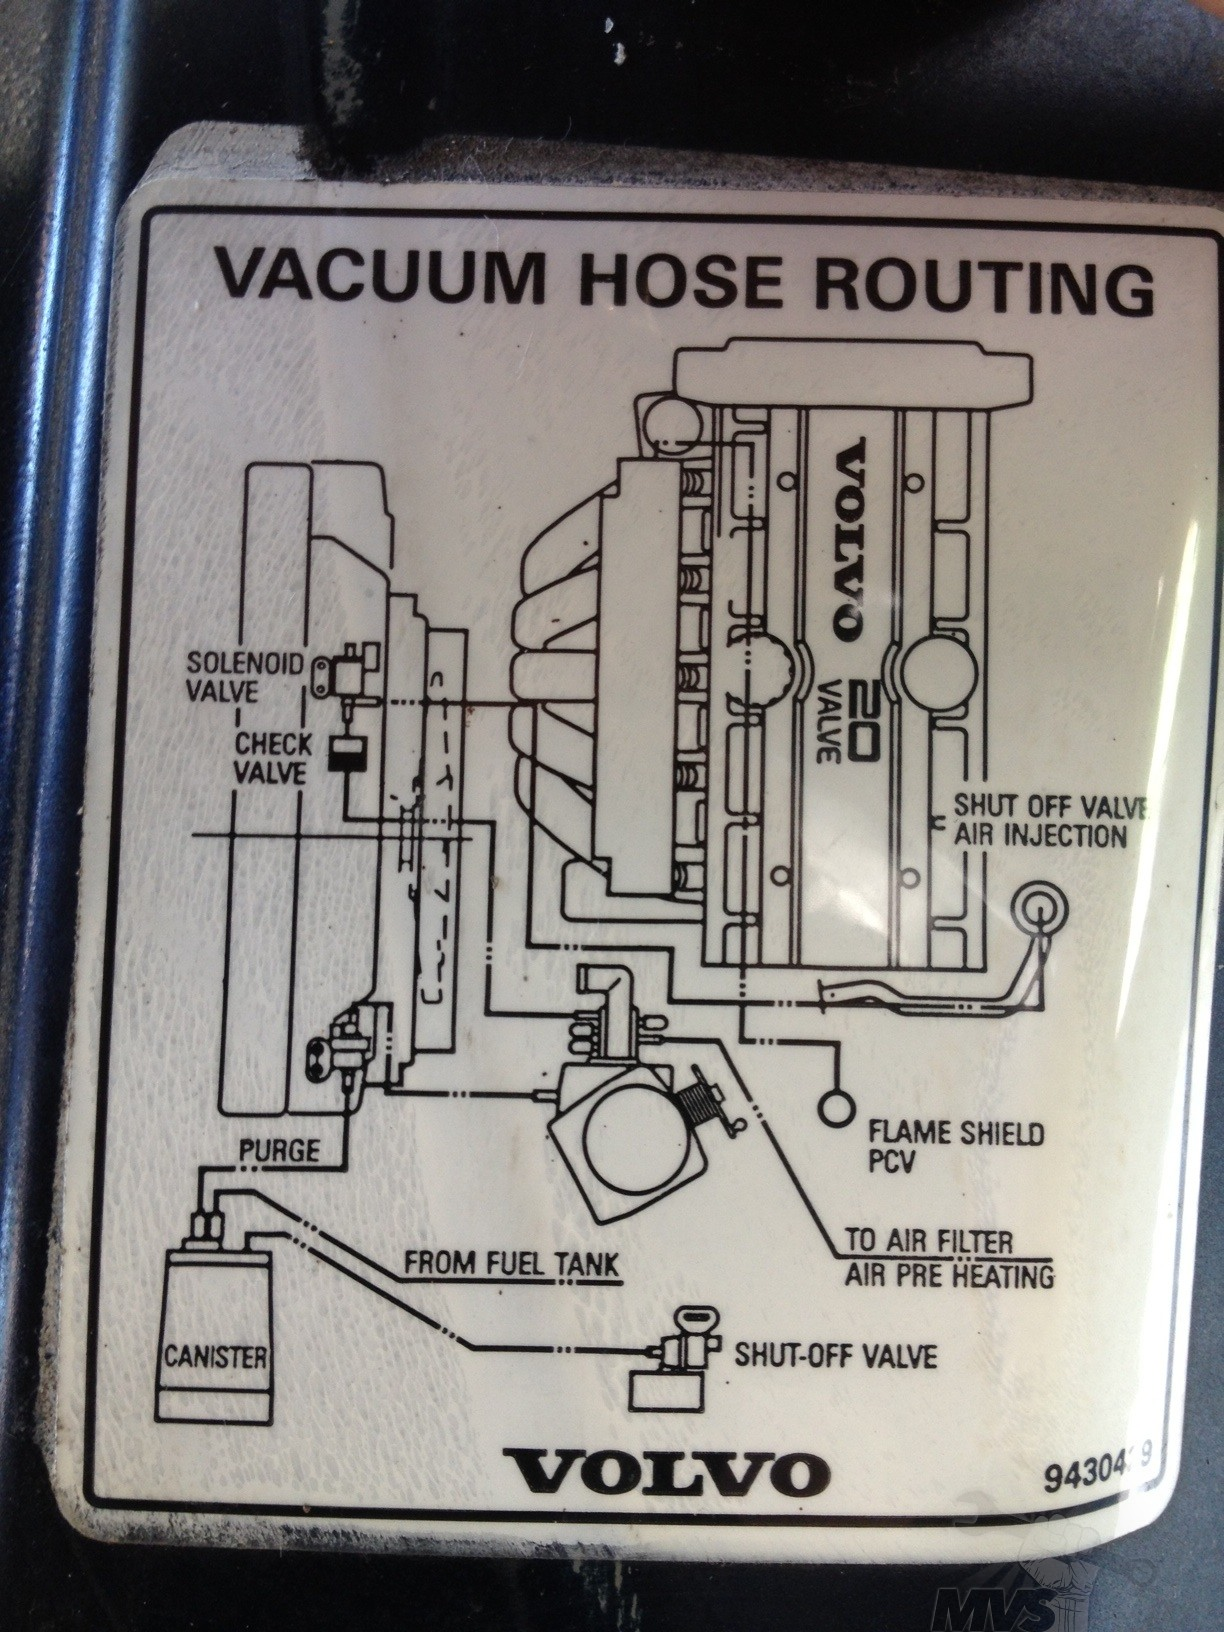 Vacuum Hose Routing Nonturbo on 2000 Volvo S70 S